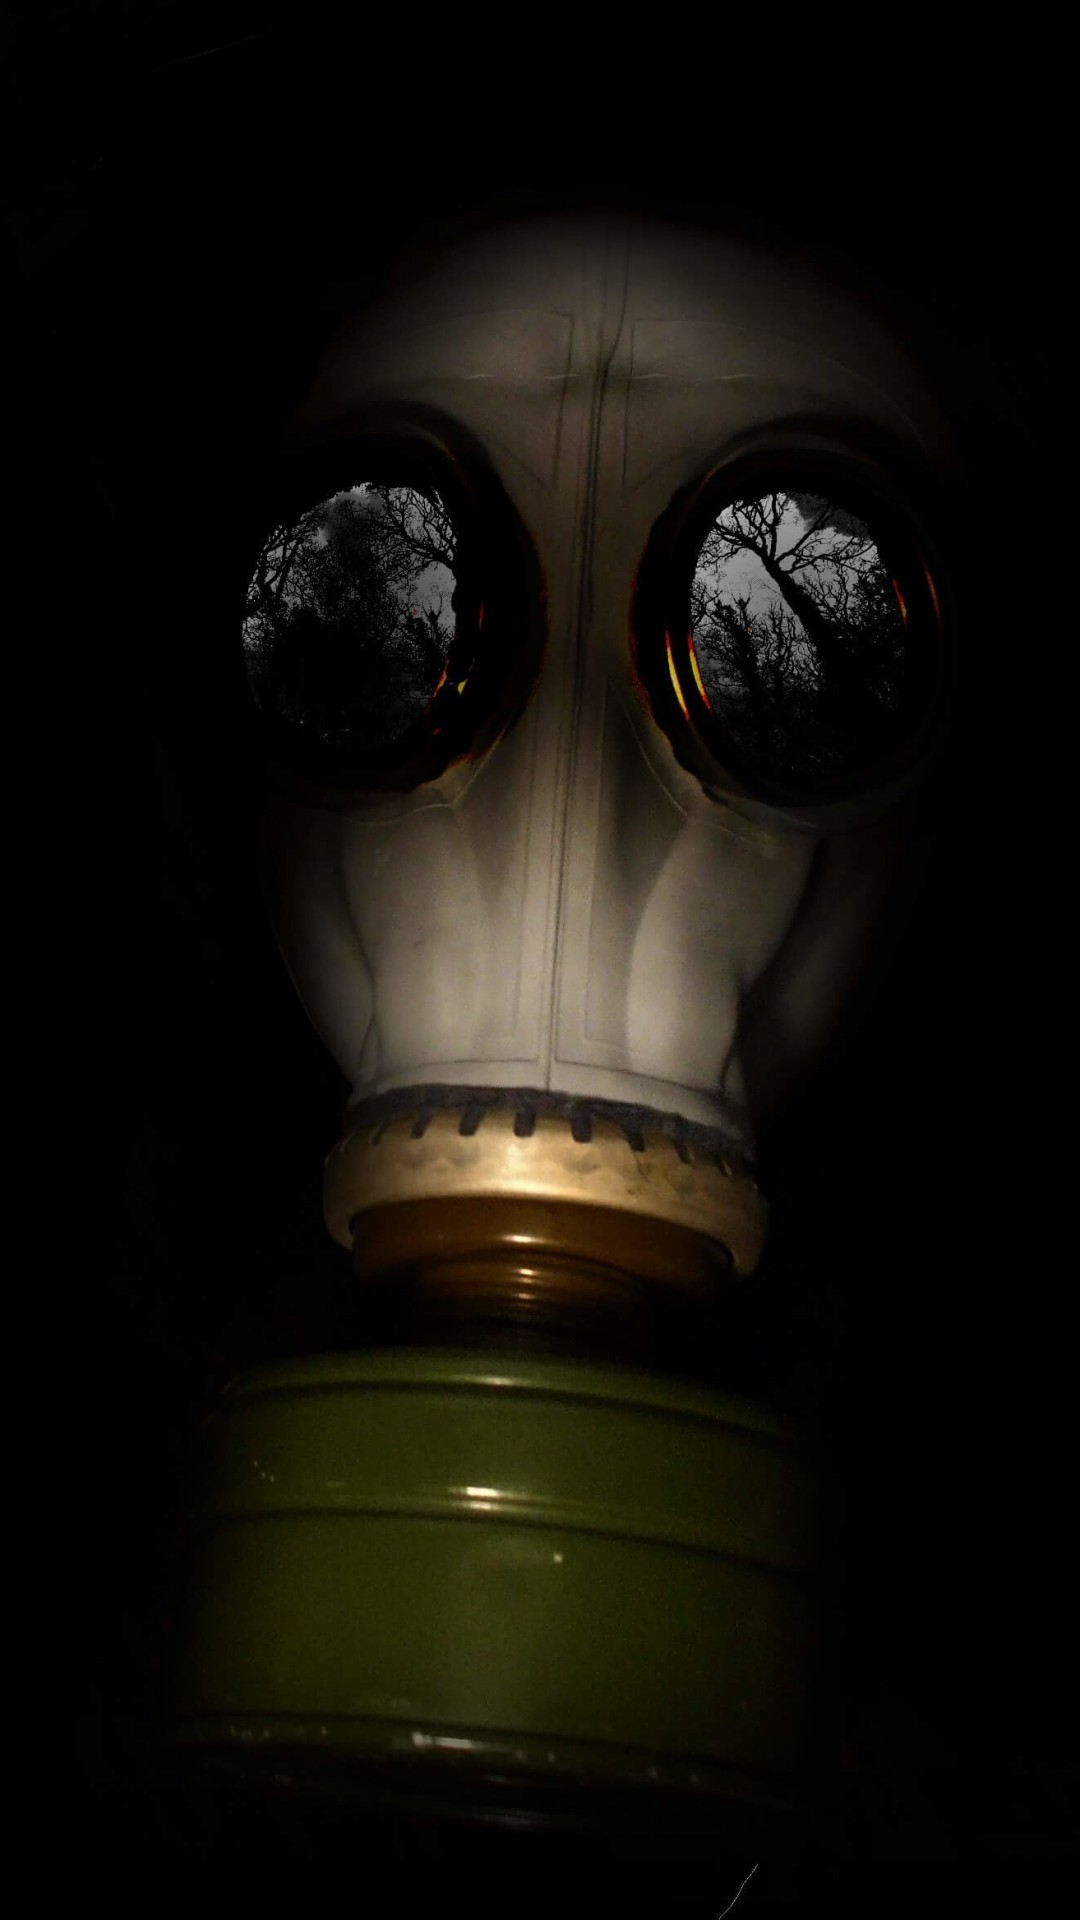 WWII Gas Mask Wallpaper for SONY Xperia Z1